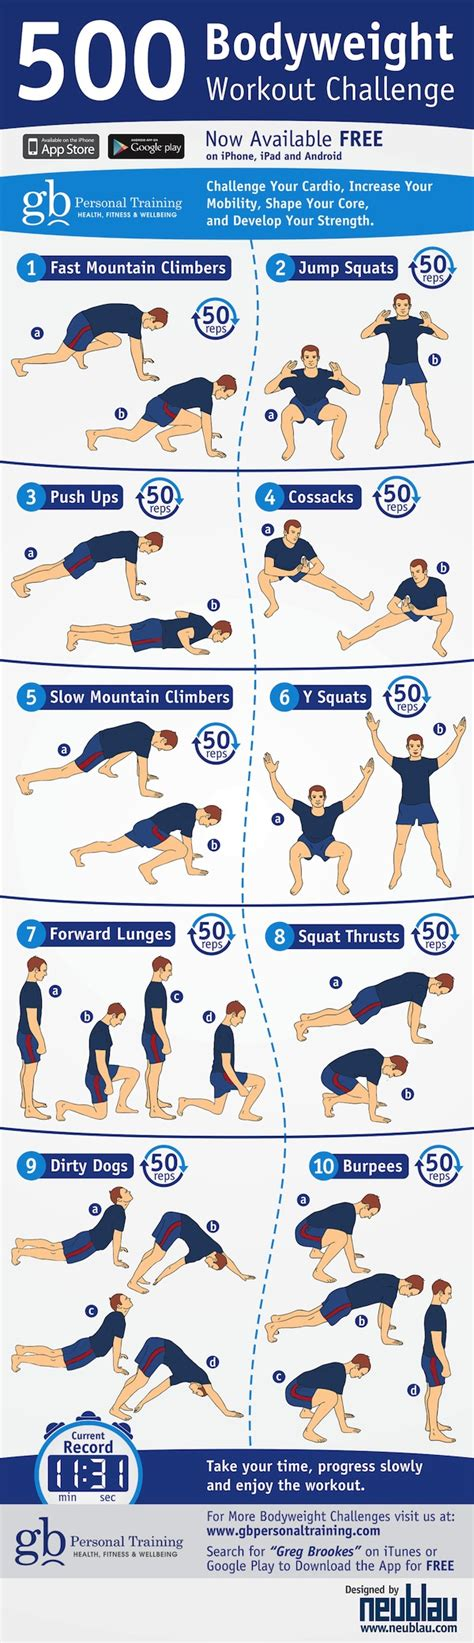 500 bodyweight challenge infographic